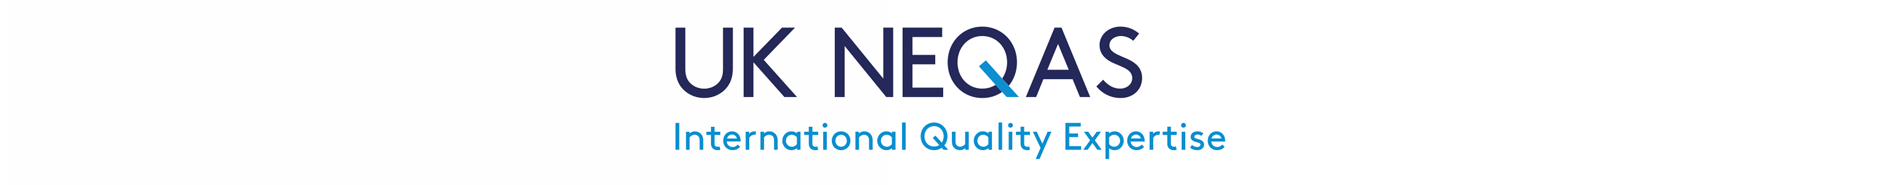 Home - UK NEQAS | External Quality Assessment Services